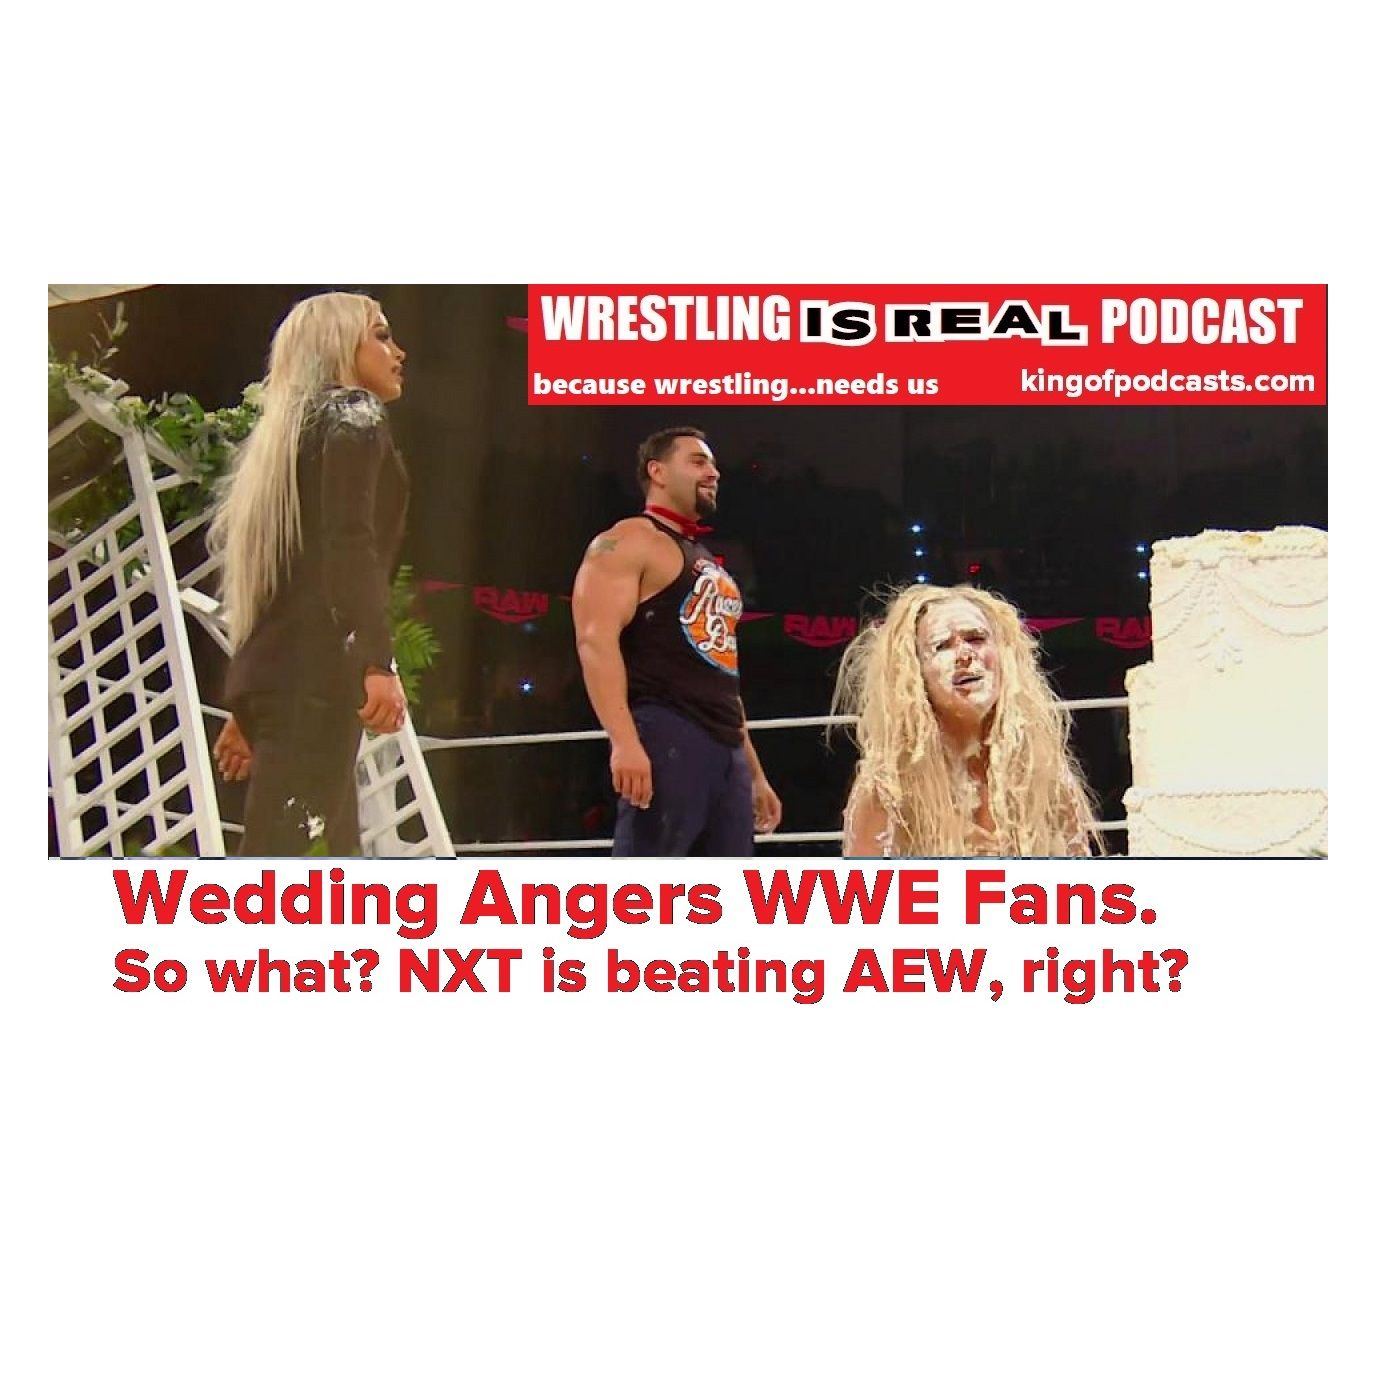 WWE Wedding Angers WWE Fans? So What? NXT is Beating AEW, Right? KOP010220-507